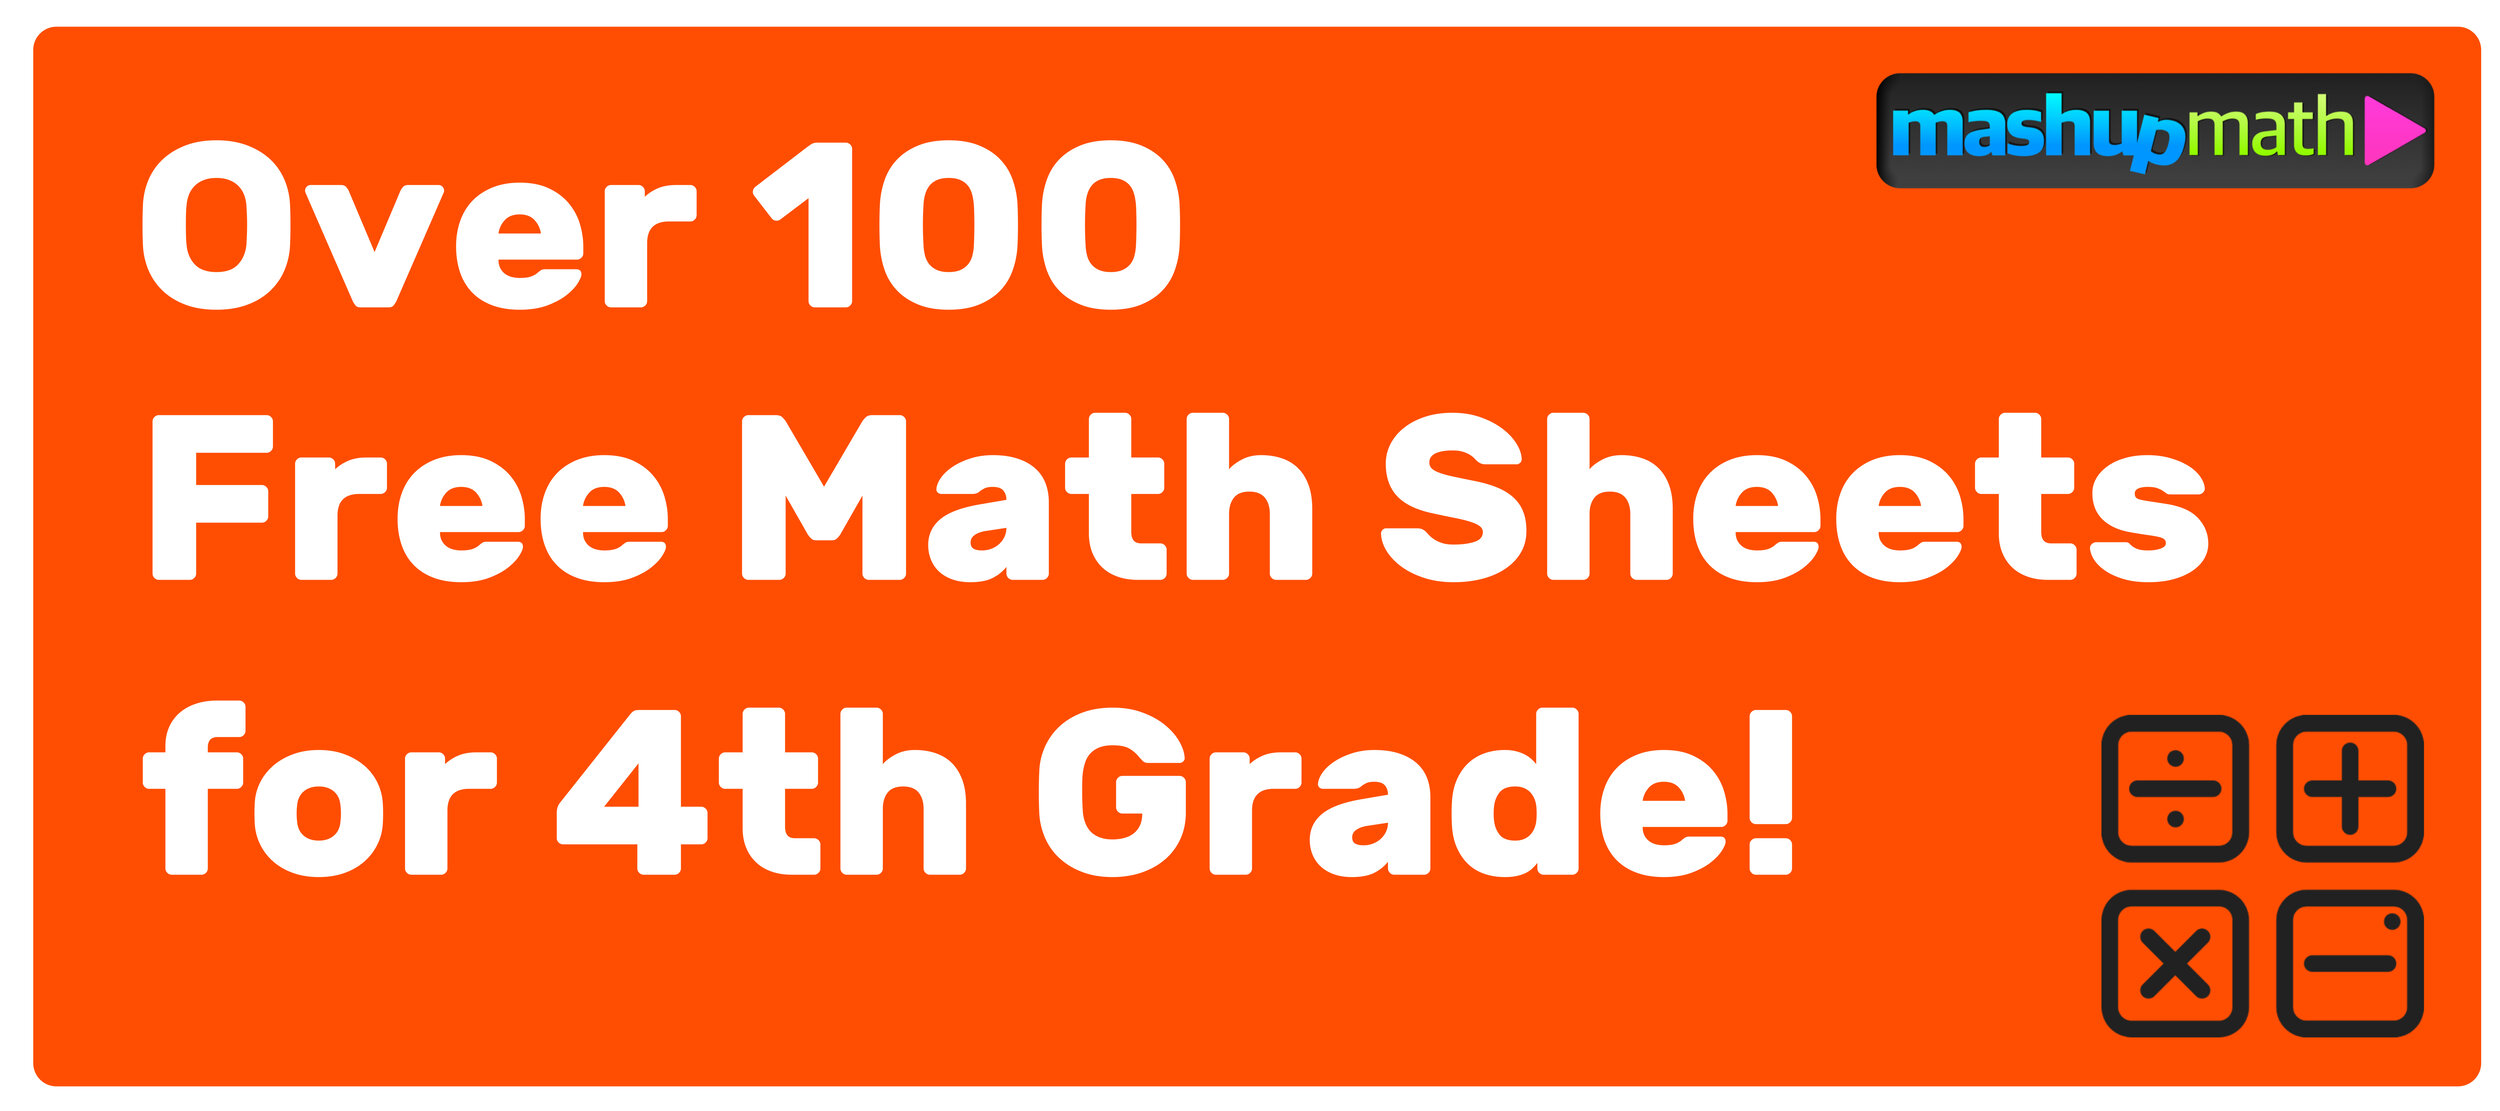 hight resolution of Free Math Sheets for 4th Grade (Easy to Print!) — Mashup Math